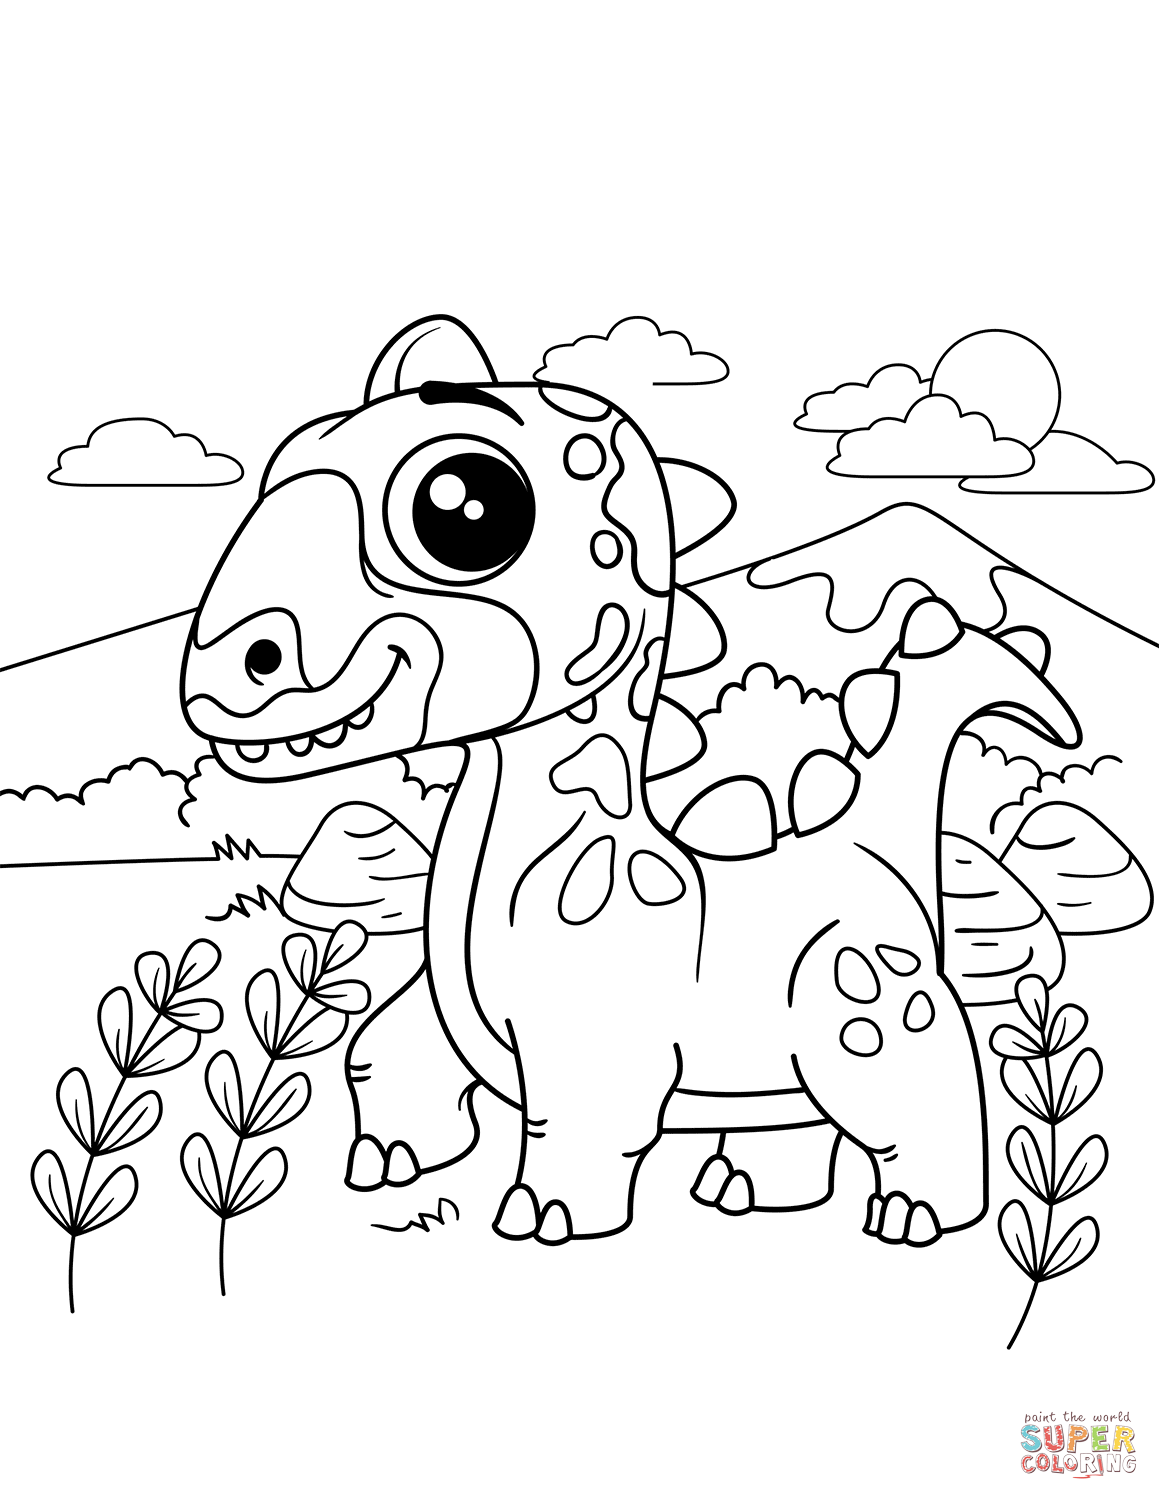 simple dinosaur coloring pages cute dinosaur drawing at getdrawings free download simple pages coloring dinosaur